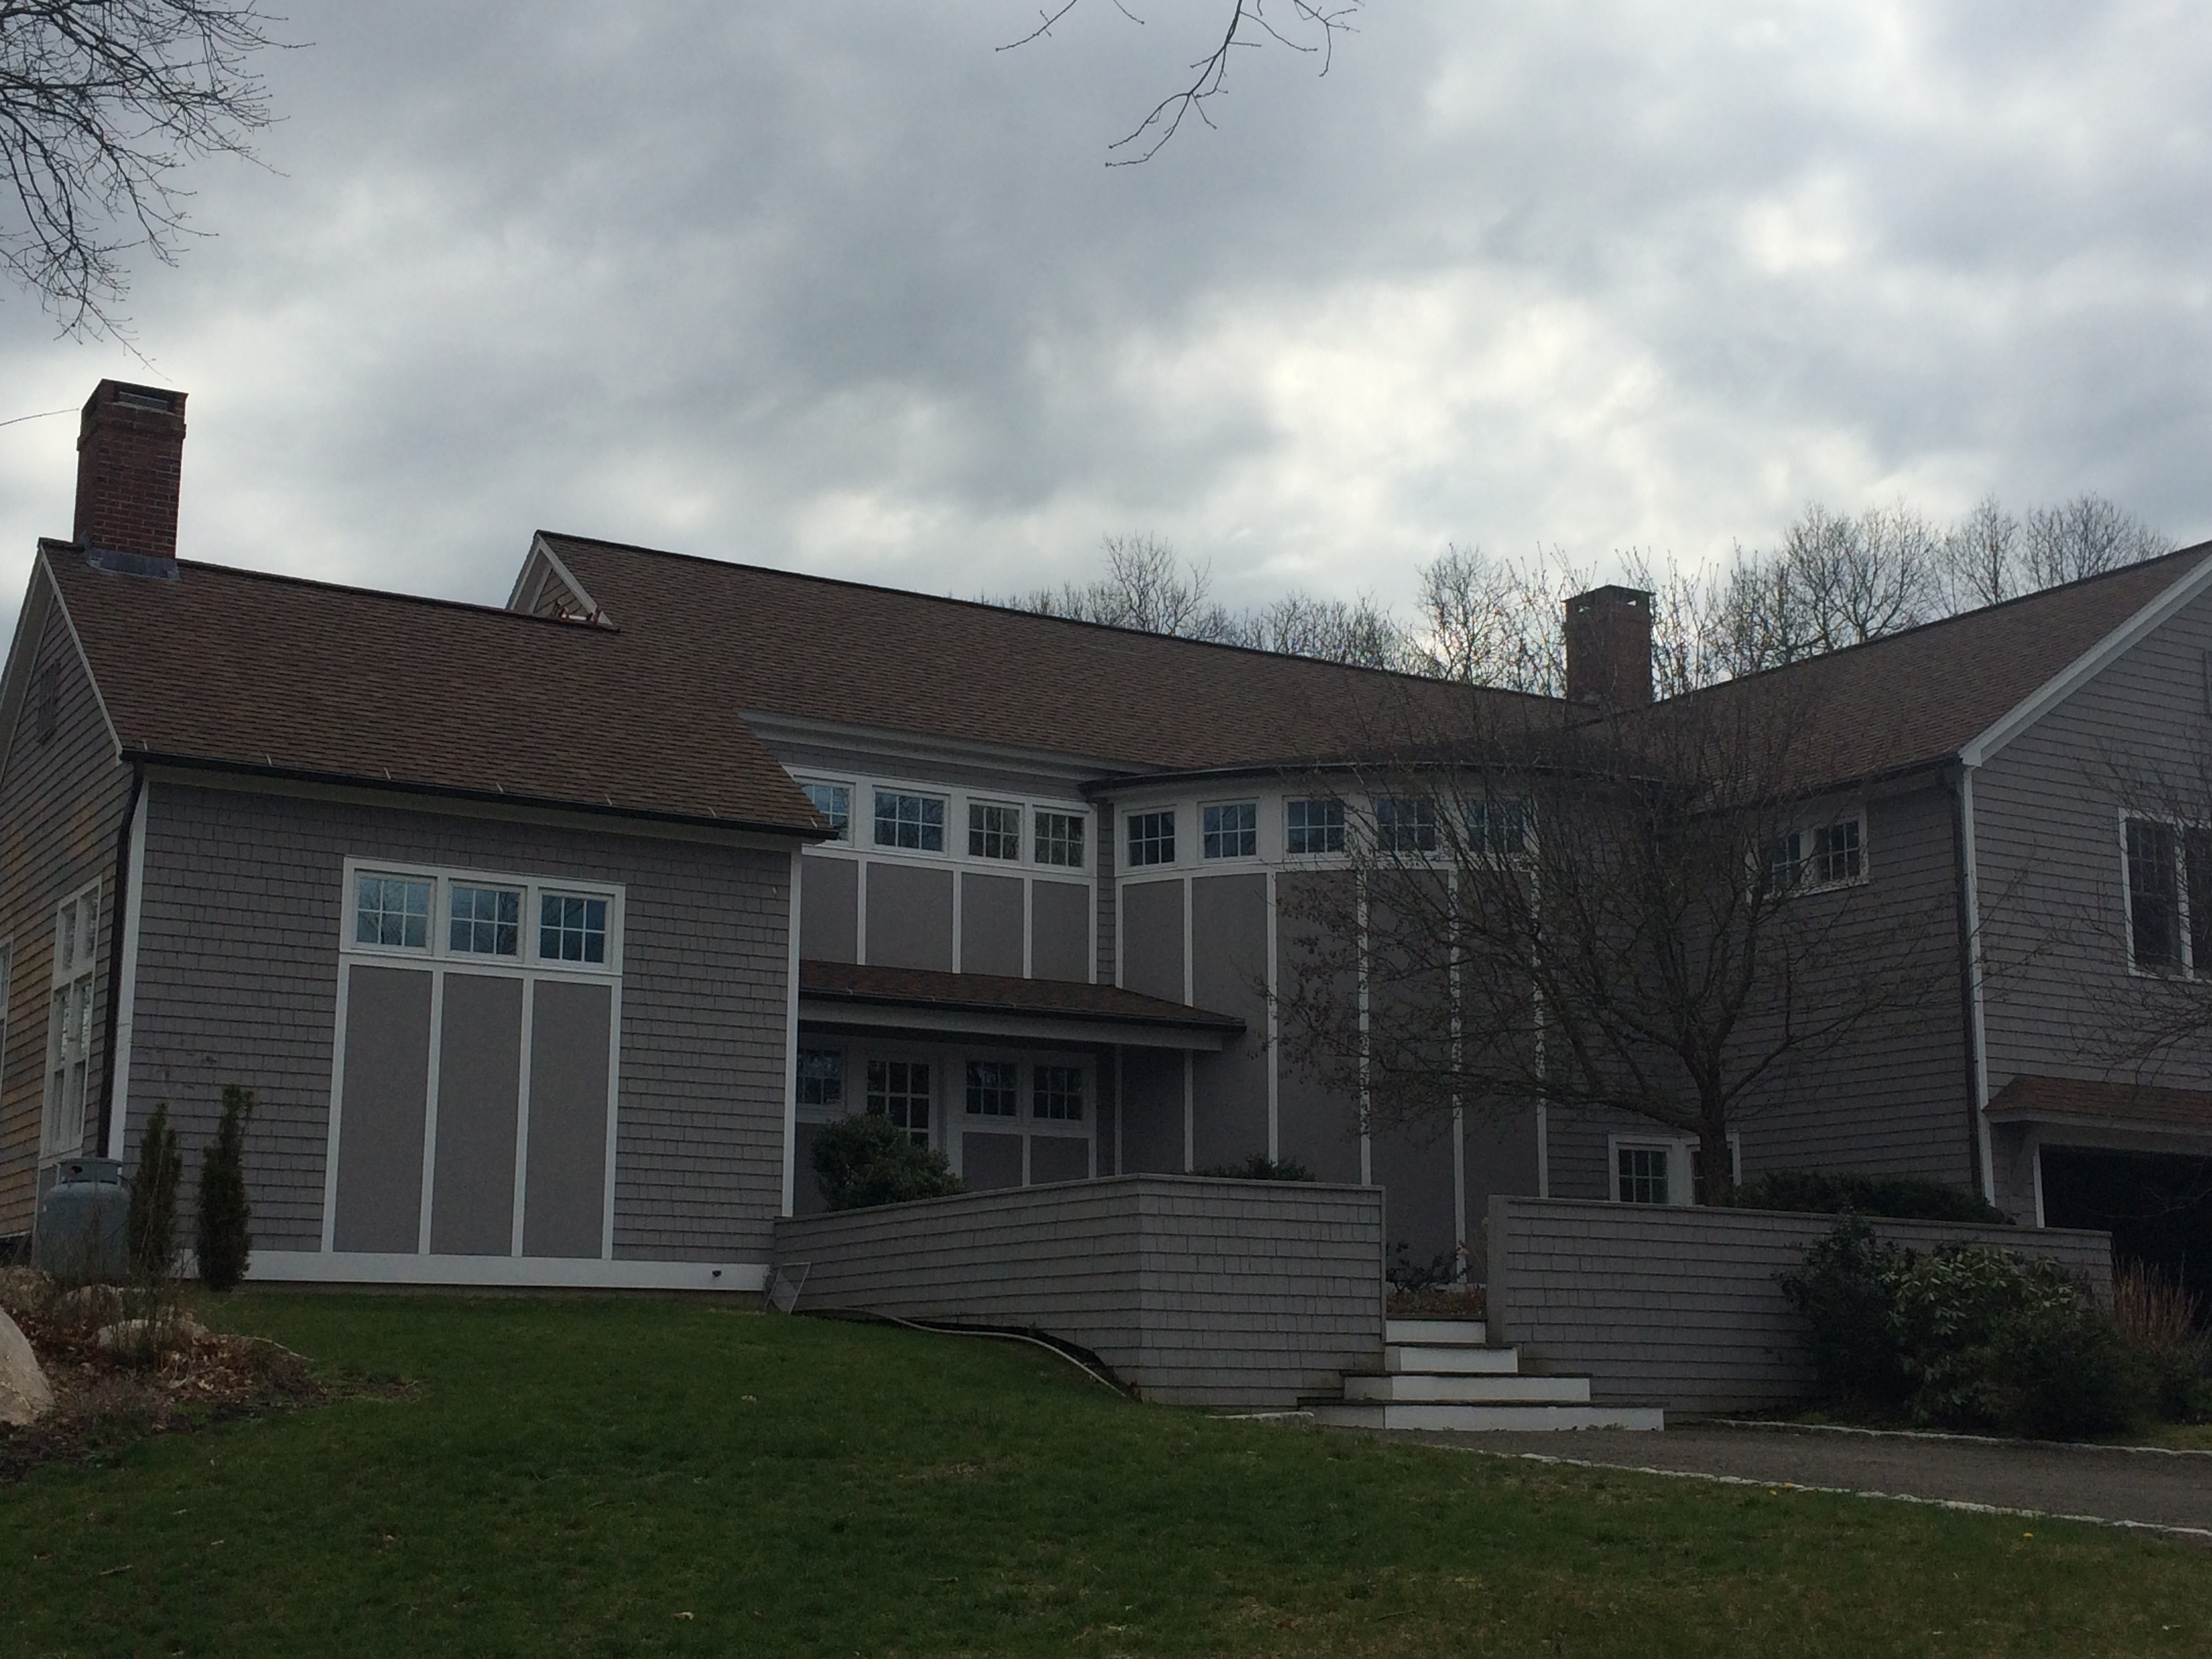 Modern Home Restored to Glory with Roof Cleaning CT – Cleaning Roof Shingles